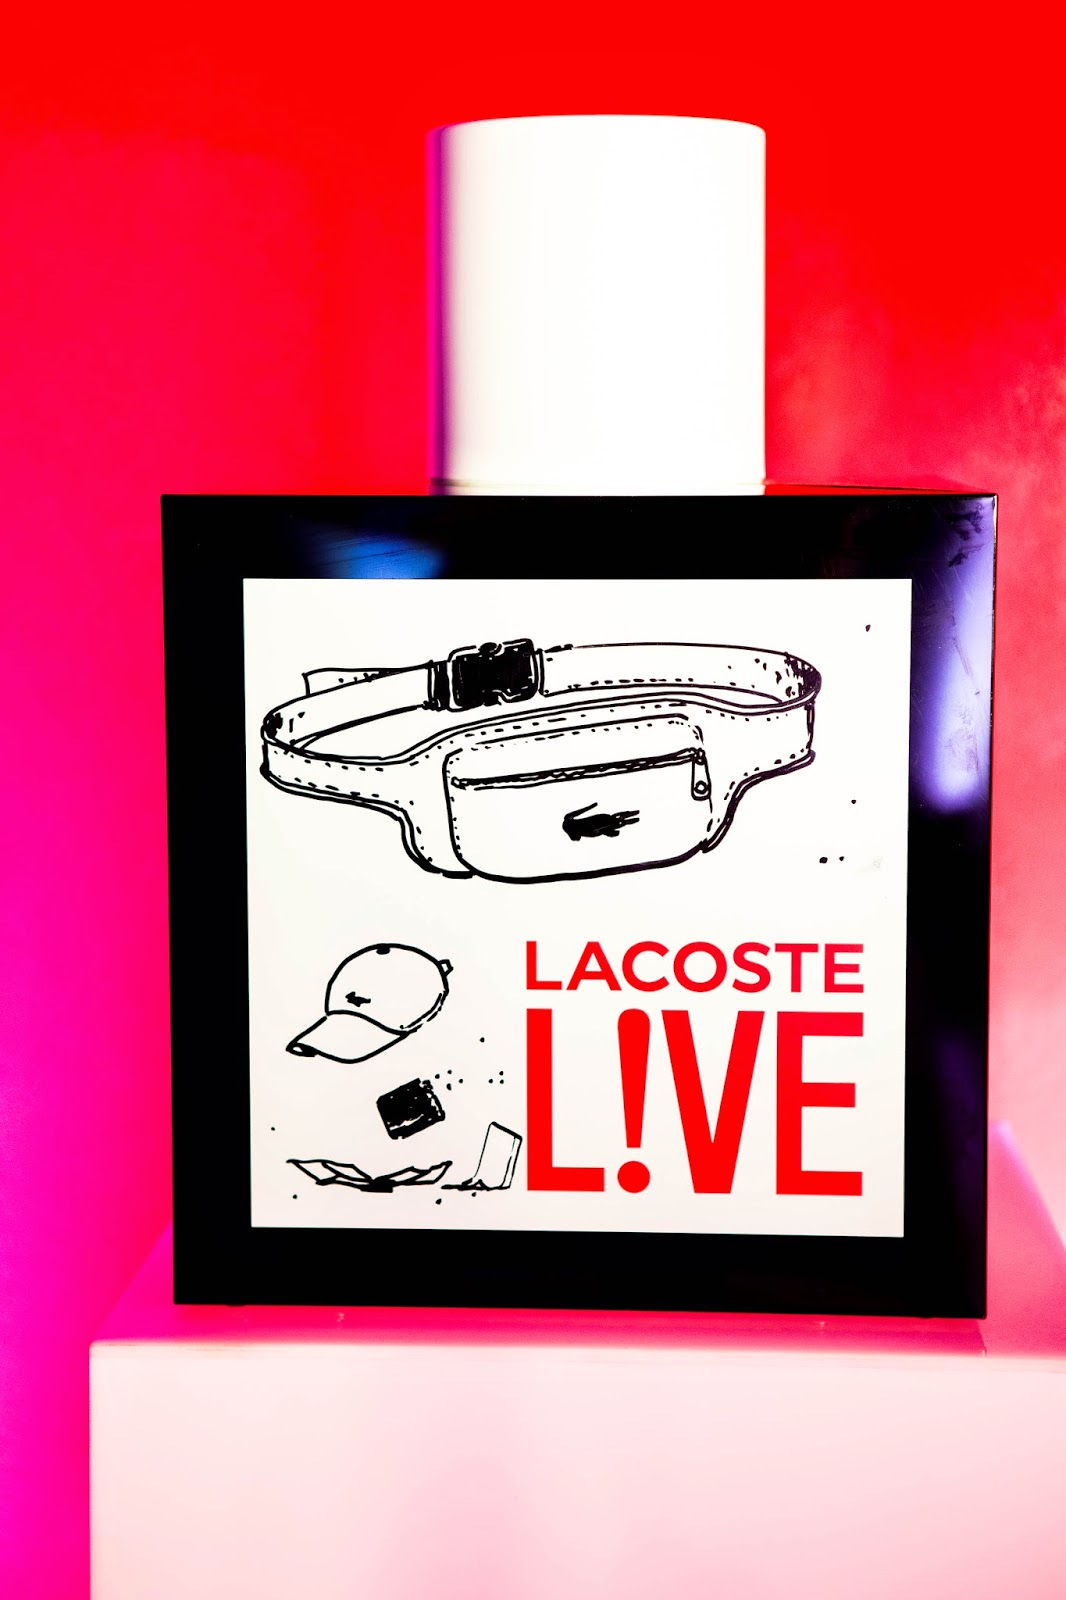 167282ede4 Kee Hua Chee Live!: LACOSTE LI!VE IS FRESH, FUN AND EDGY! AND YES ...